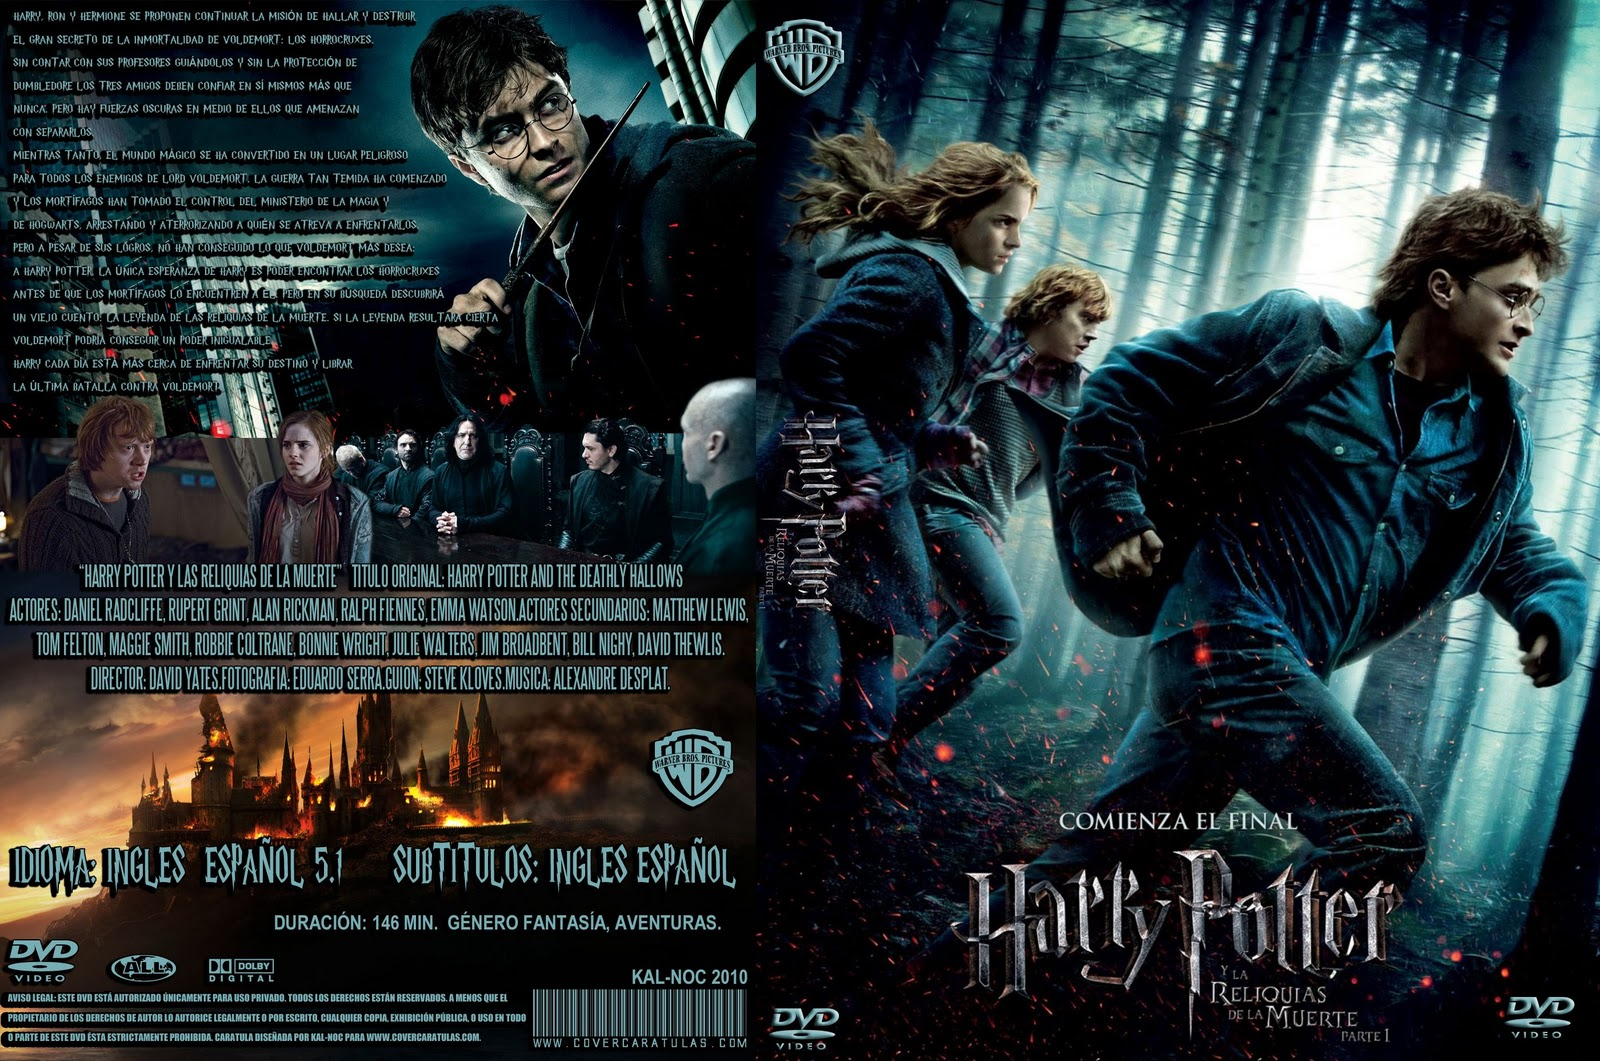 Harry Potter 7 [DVD Custom] [Ing-Esp latino]